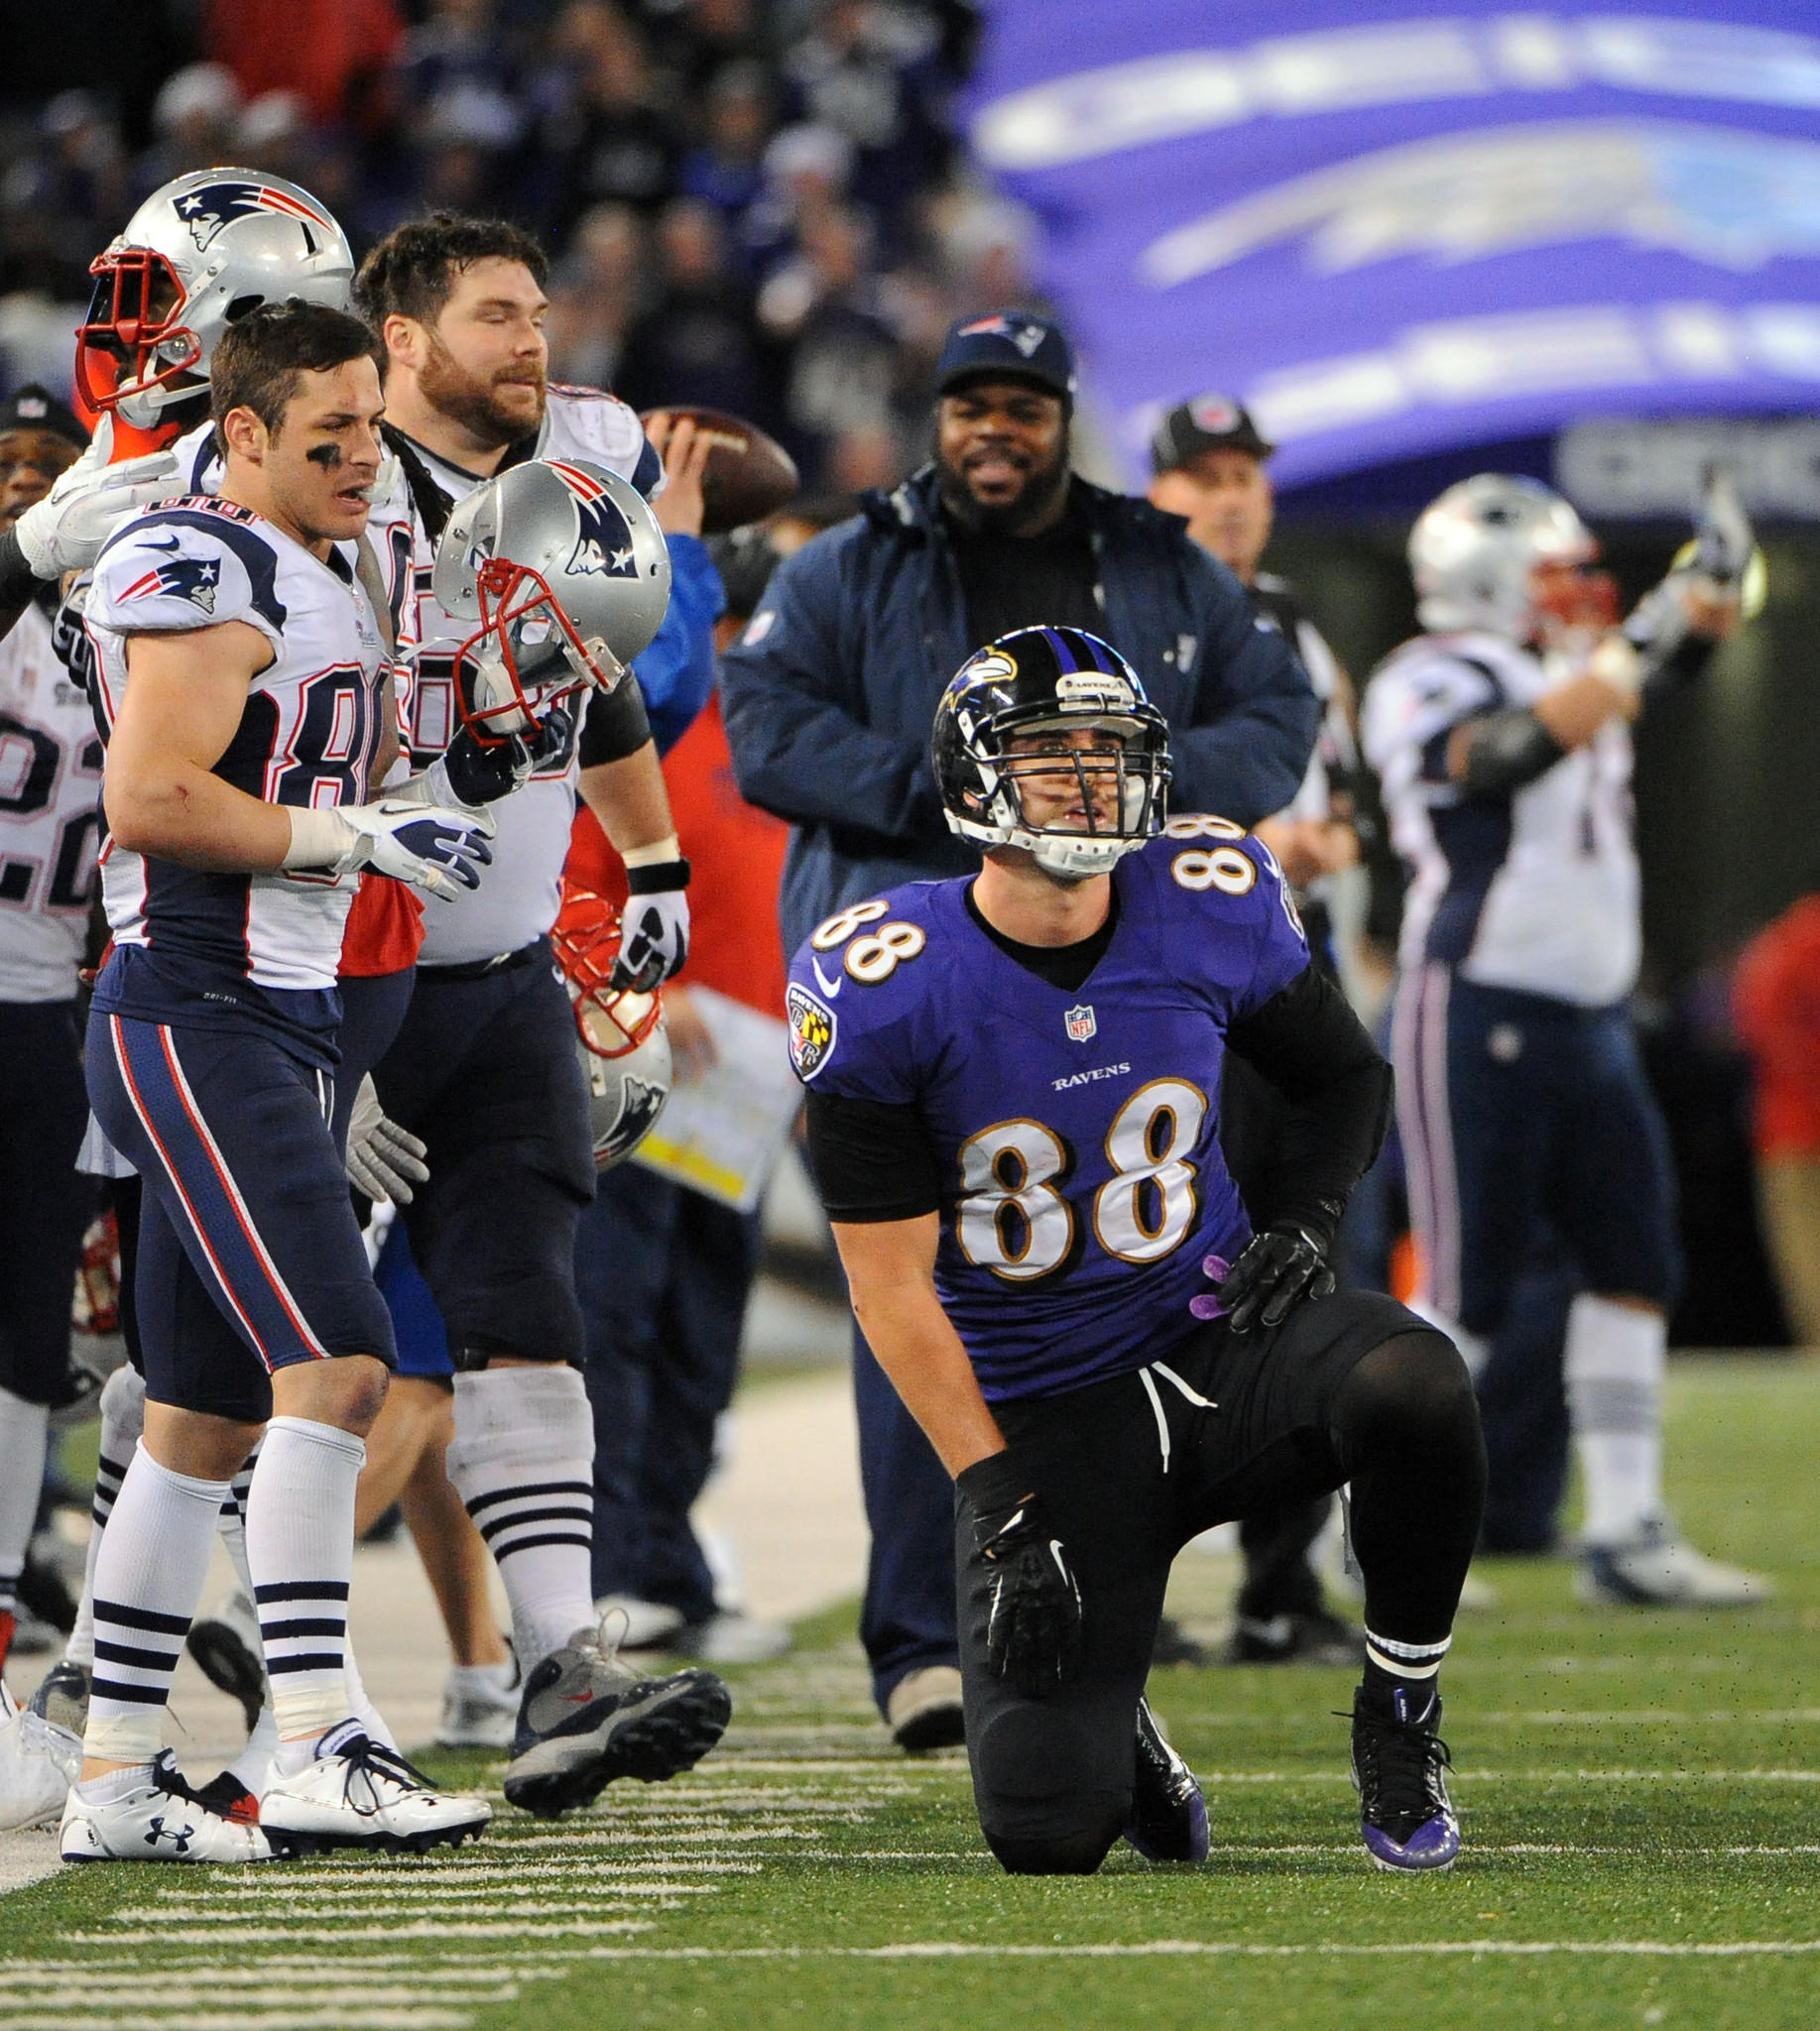 Ravens tight end Dennis Pitta looks on as the Patriots celebrate a turnover on downs after Pitta fails to make a catch on fourth-and-10 in the fourth quarter.